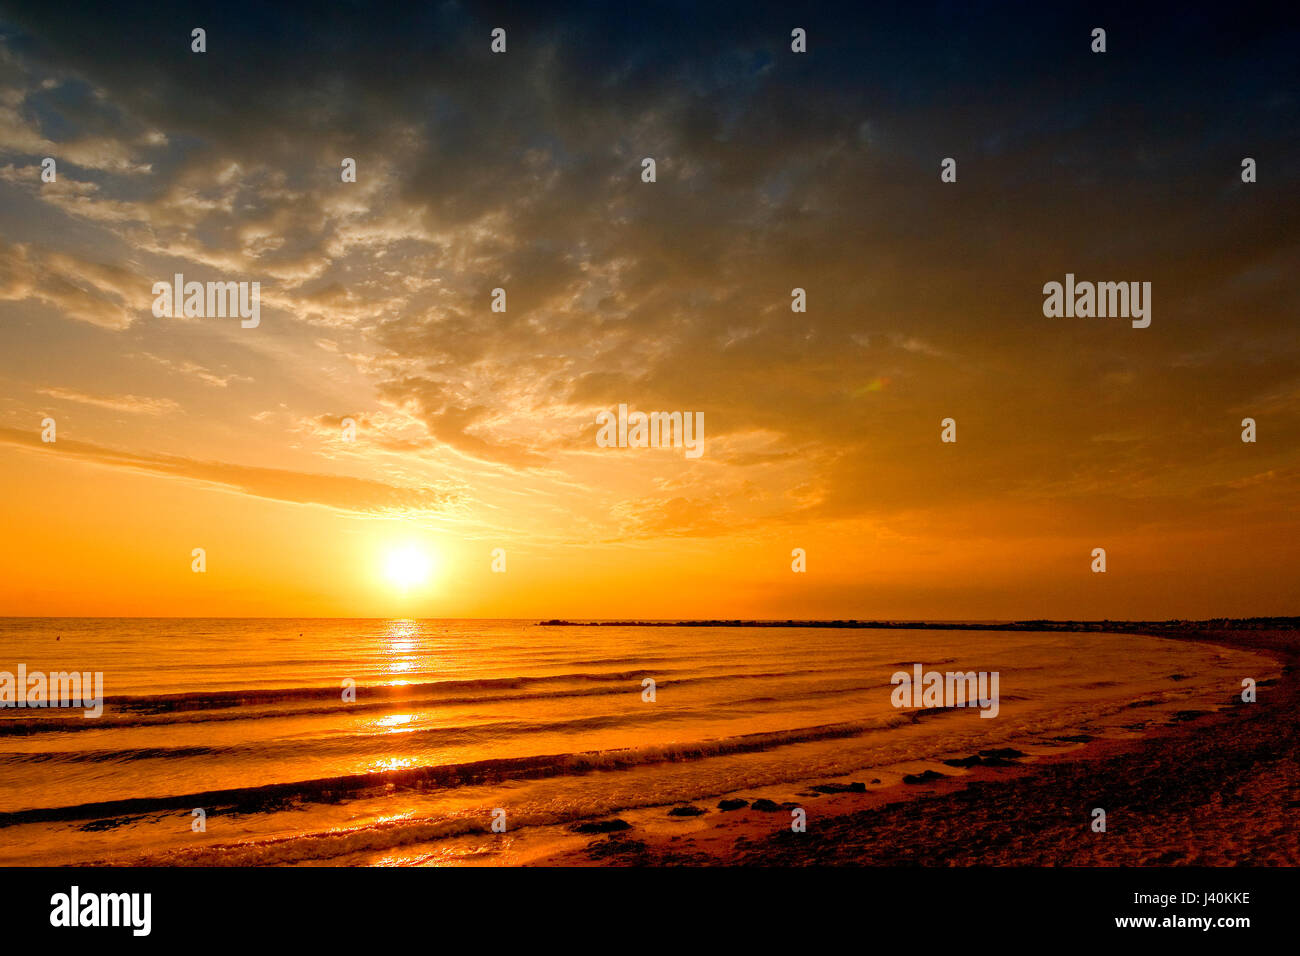 sun rise sea landscape with golden sea and clouds on sky - Stock Image